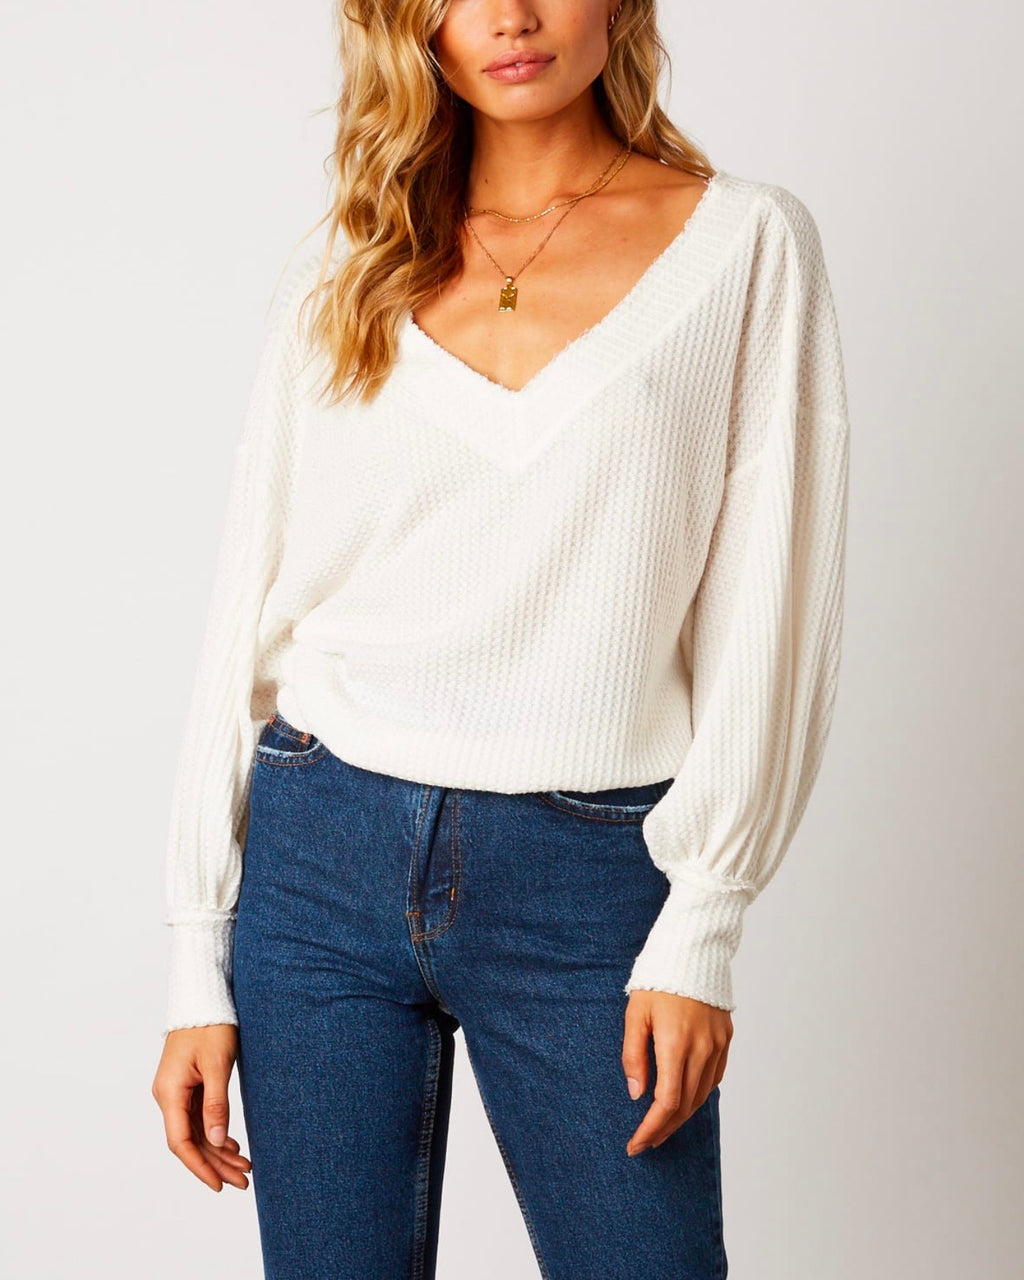 Waffle Knit Thermal V Neck Top with Cuffed Sleeves - More Colors